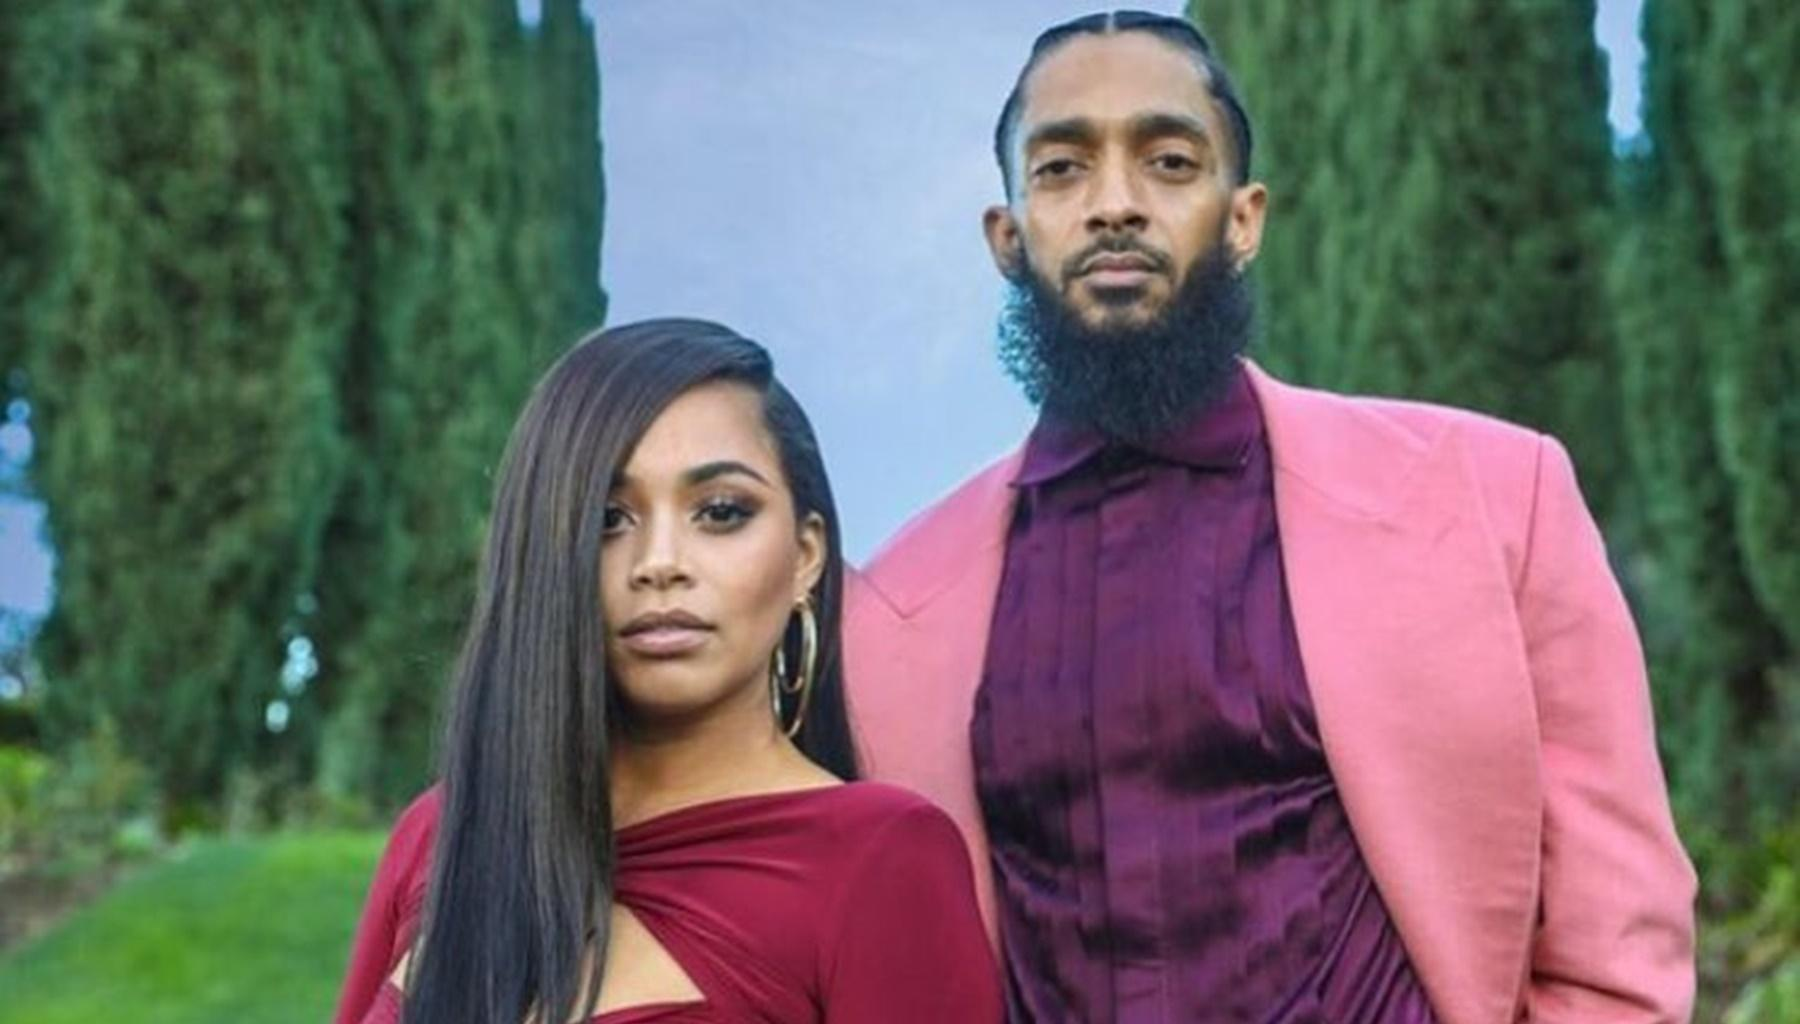 Lauren London And Members Of Nipsey Hussle's Family Pay Respects While Some Fans Are Still Looking For Answers